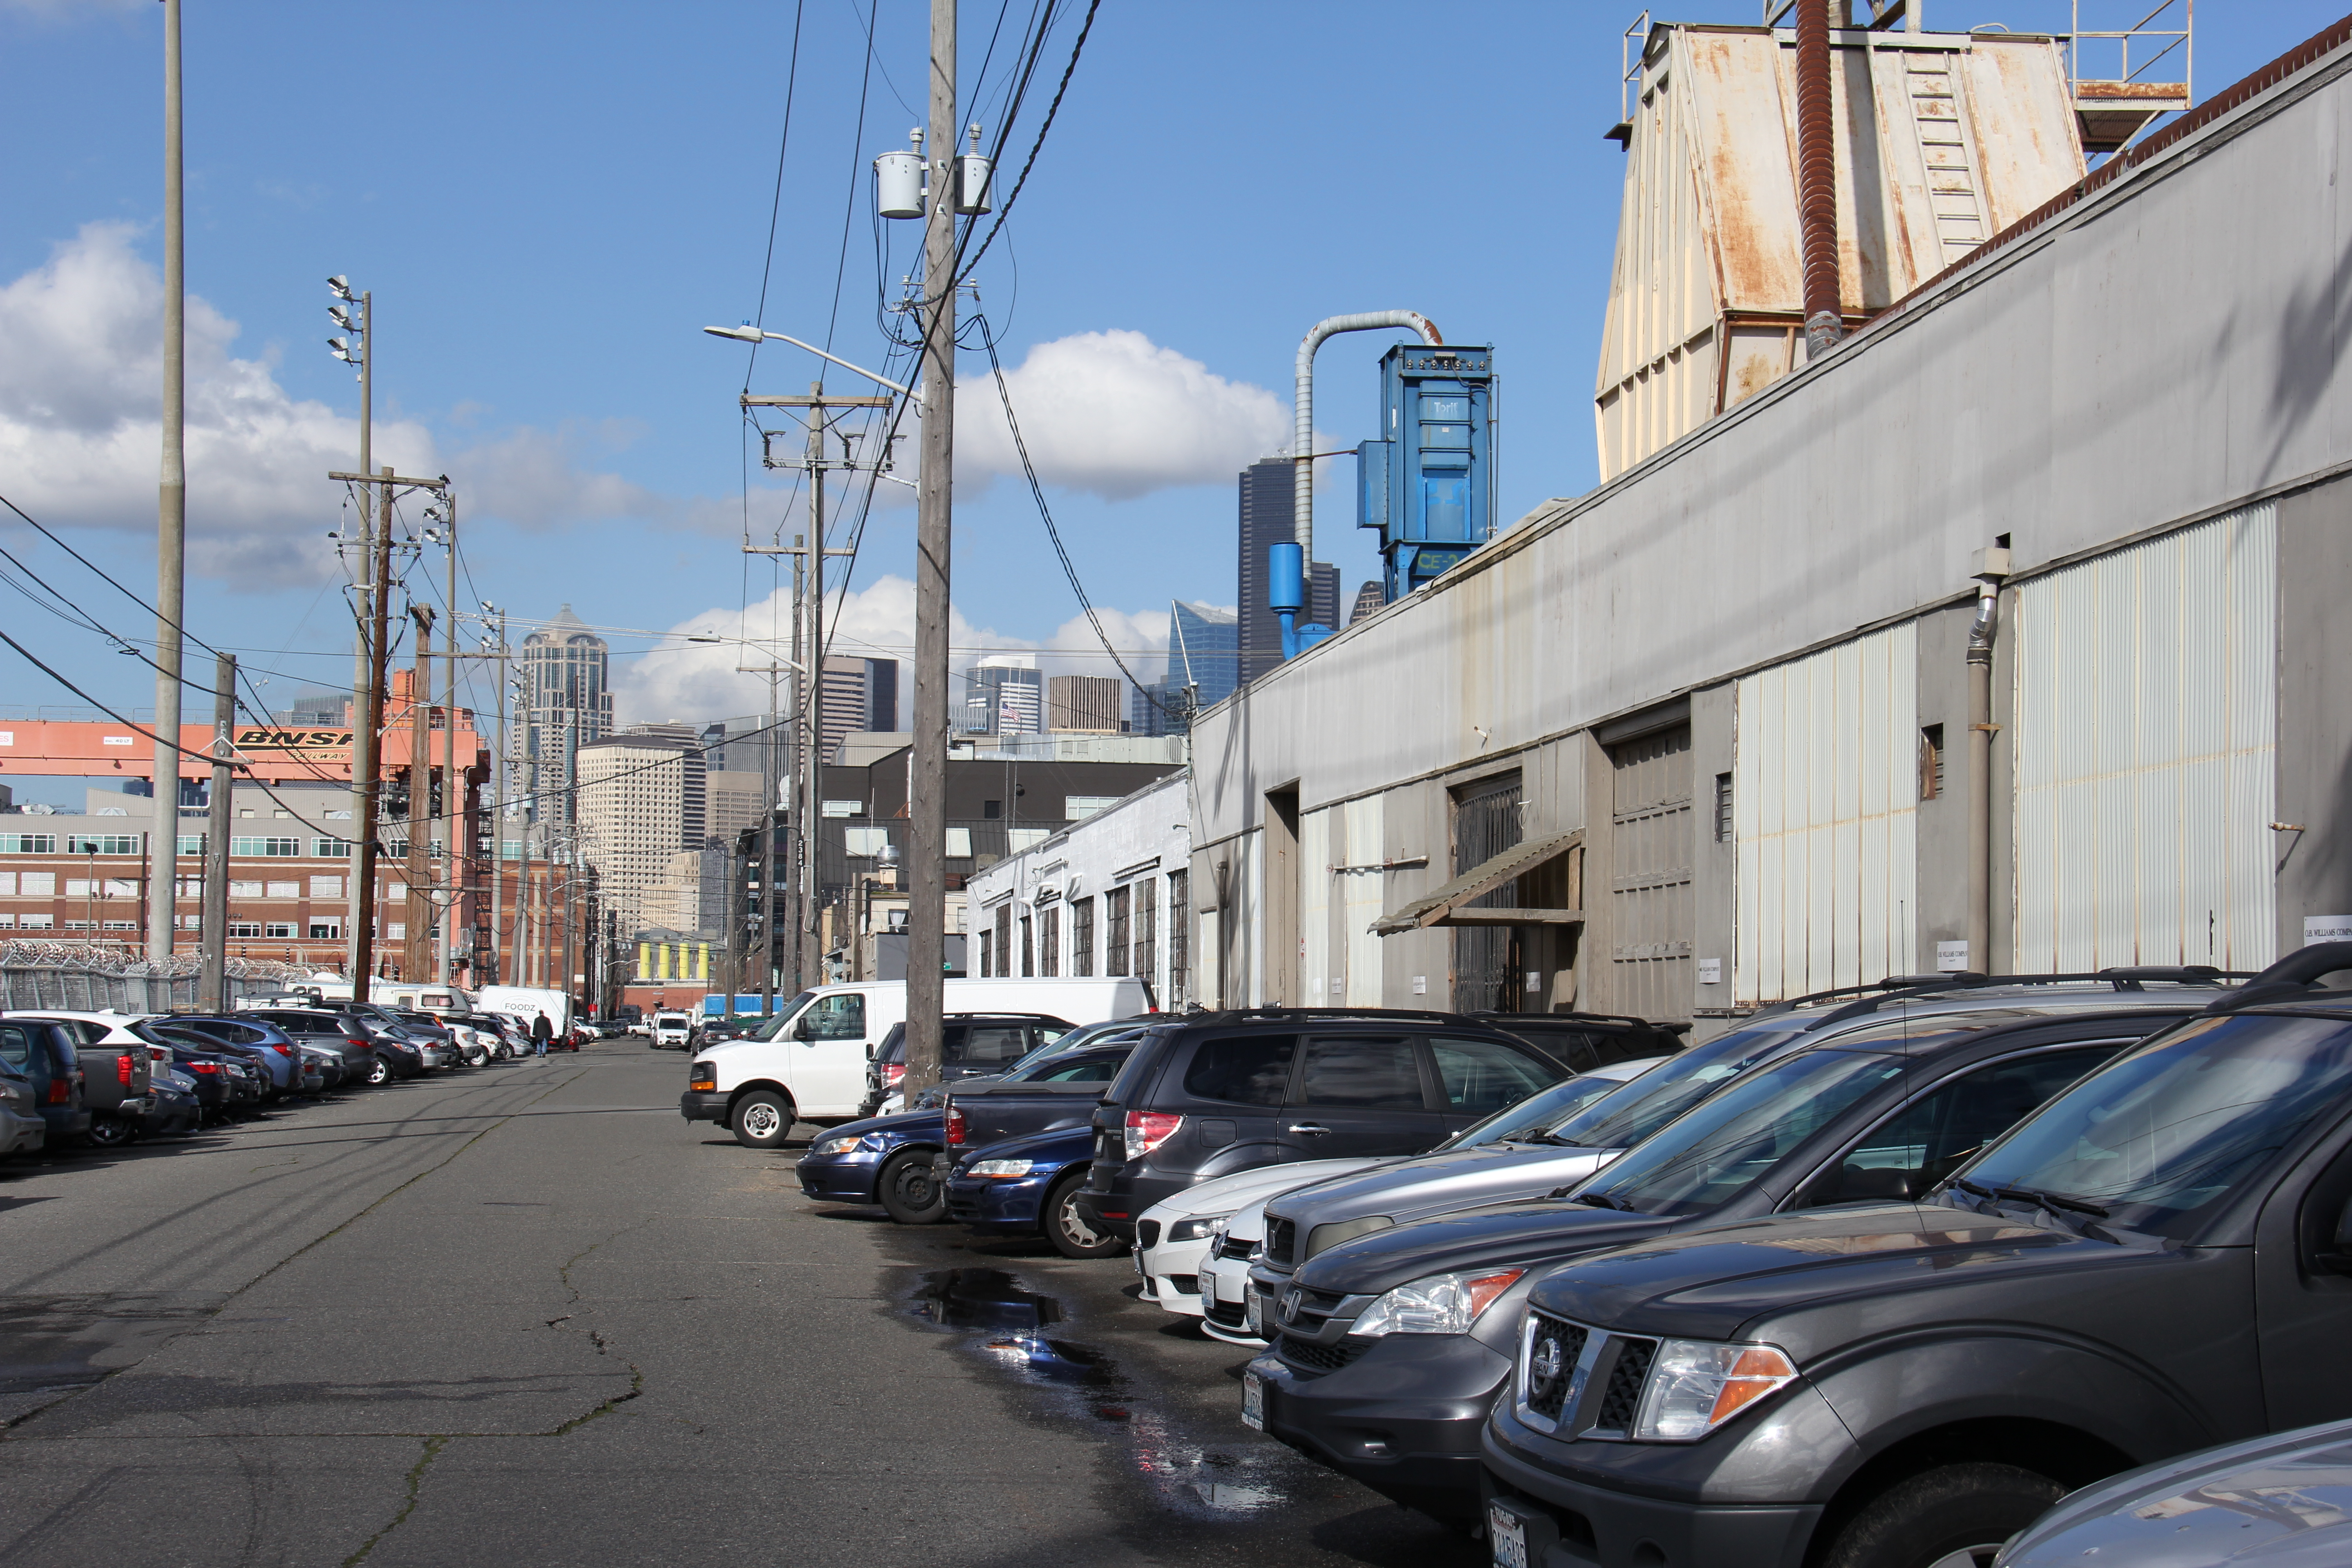 Parked cars pack the rights of way off Utah Avenue, south of Holgate Street, in Seattle's SODO neighborhood